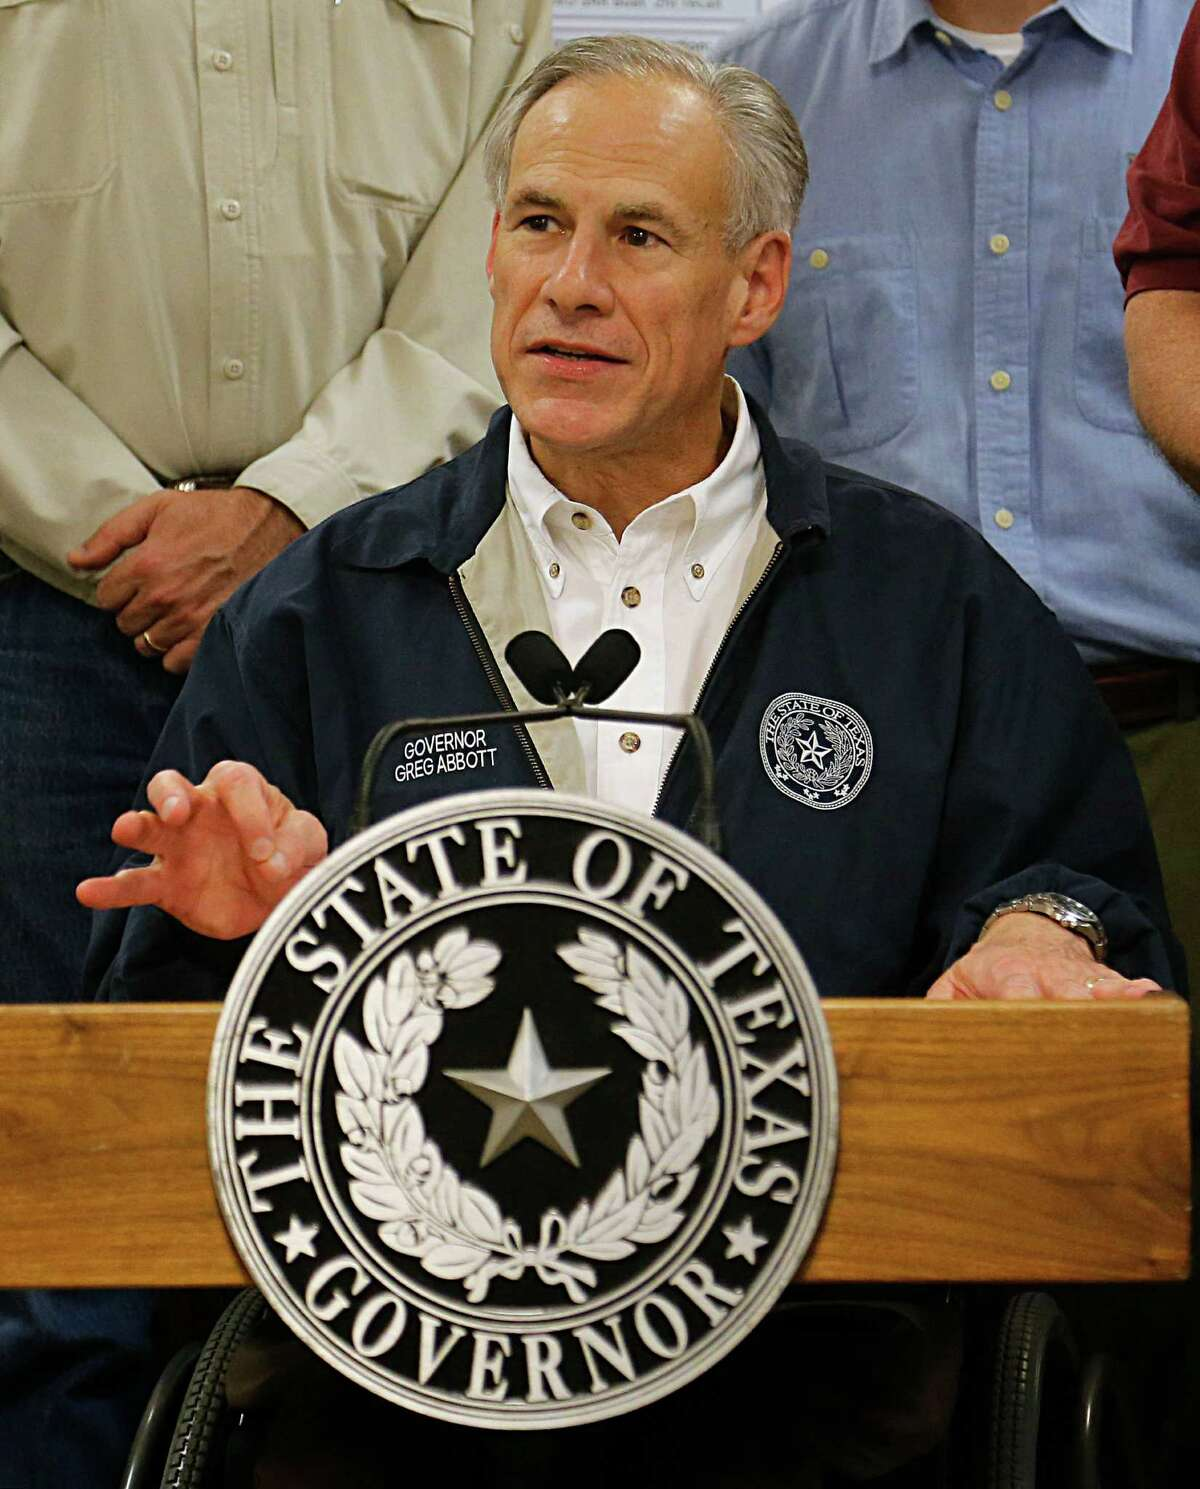 Texas Governor Greg Abbott speaks at a press conference at the Brazoria County Court at Law after taking an aerial tour of Brazoria and Fort Bend Counties Friday, June 3, 2016, in Angleton. ( James Nielsen / Houston Chronicle )